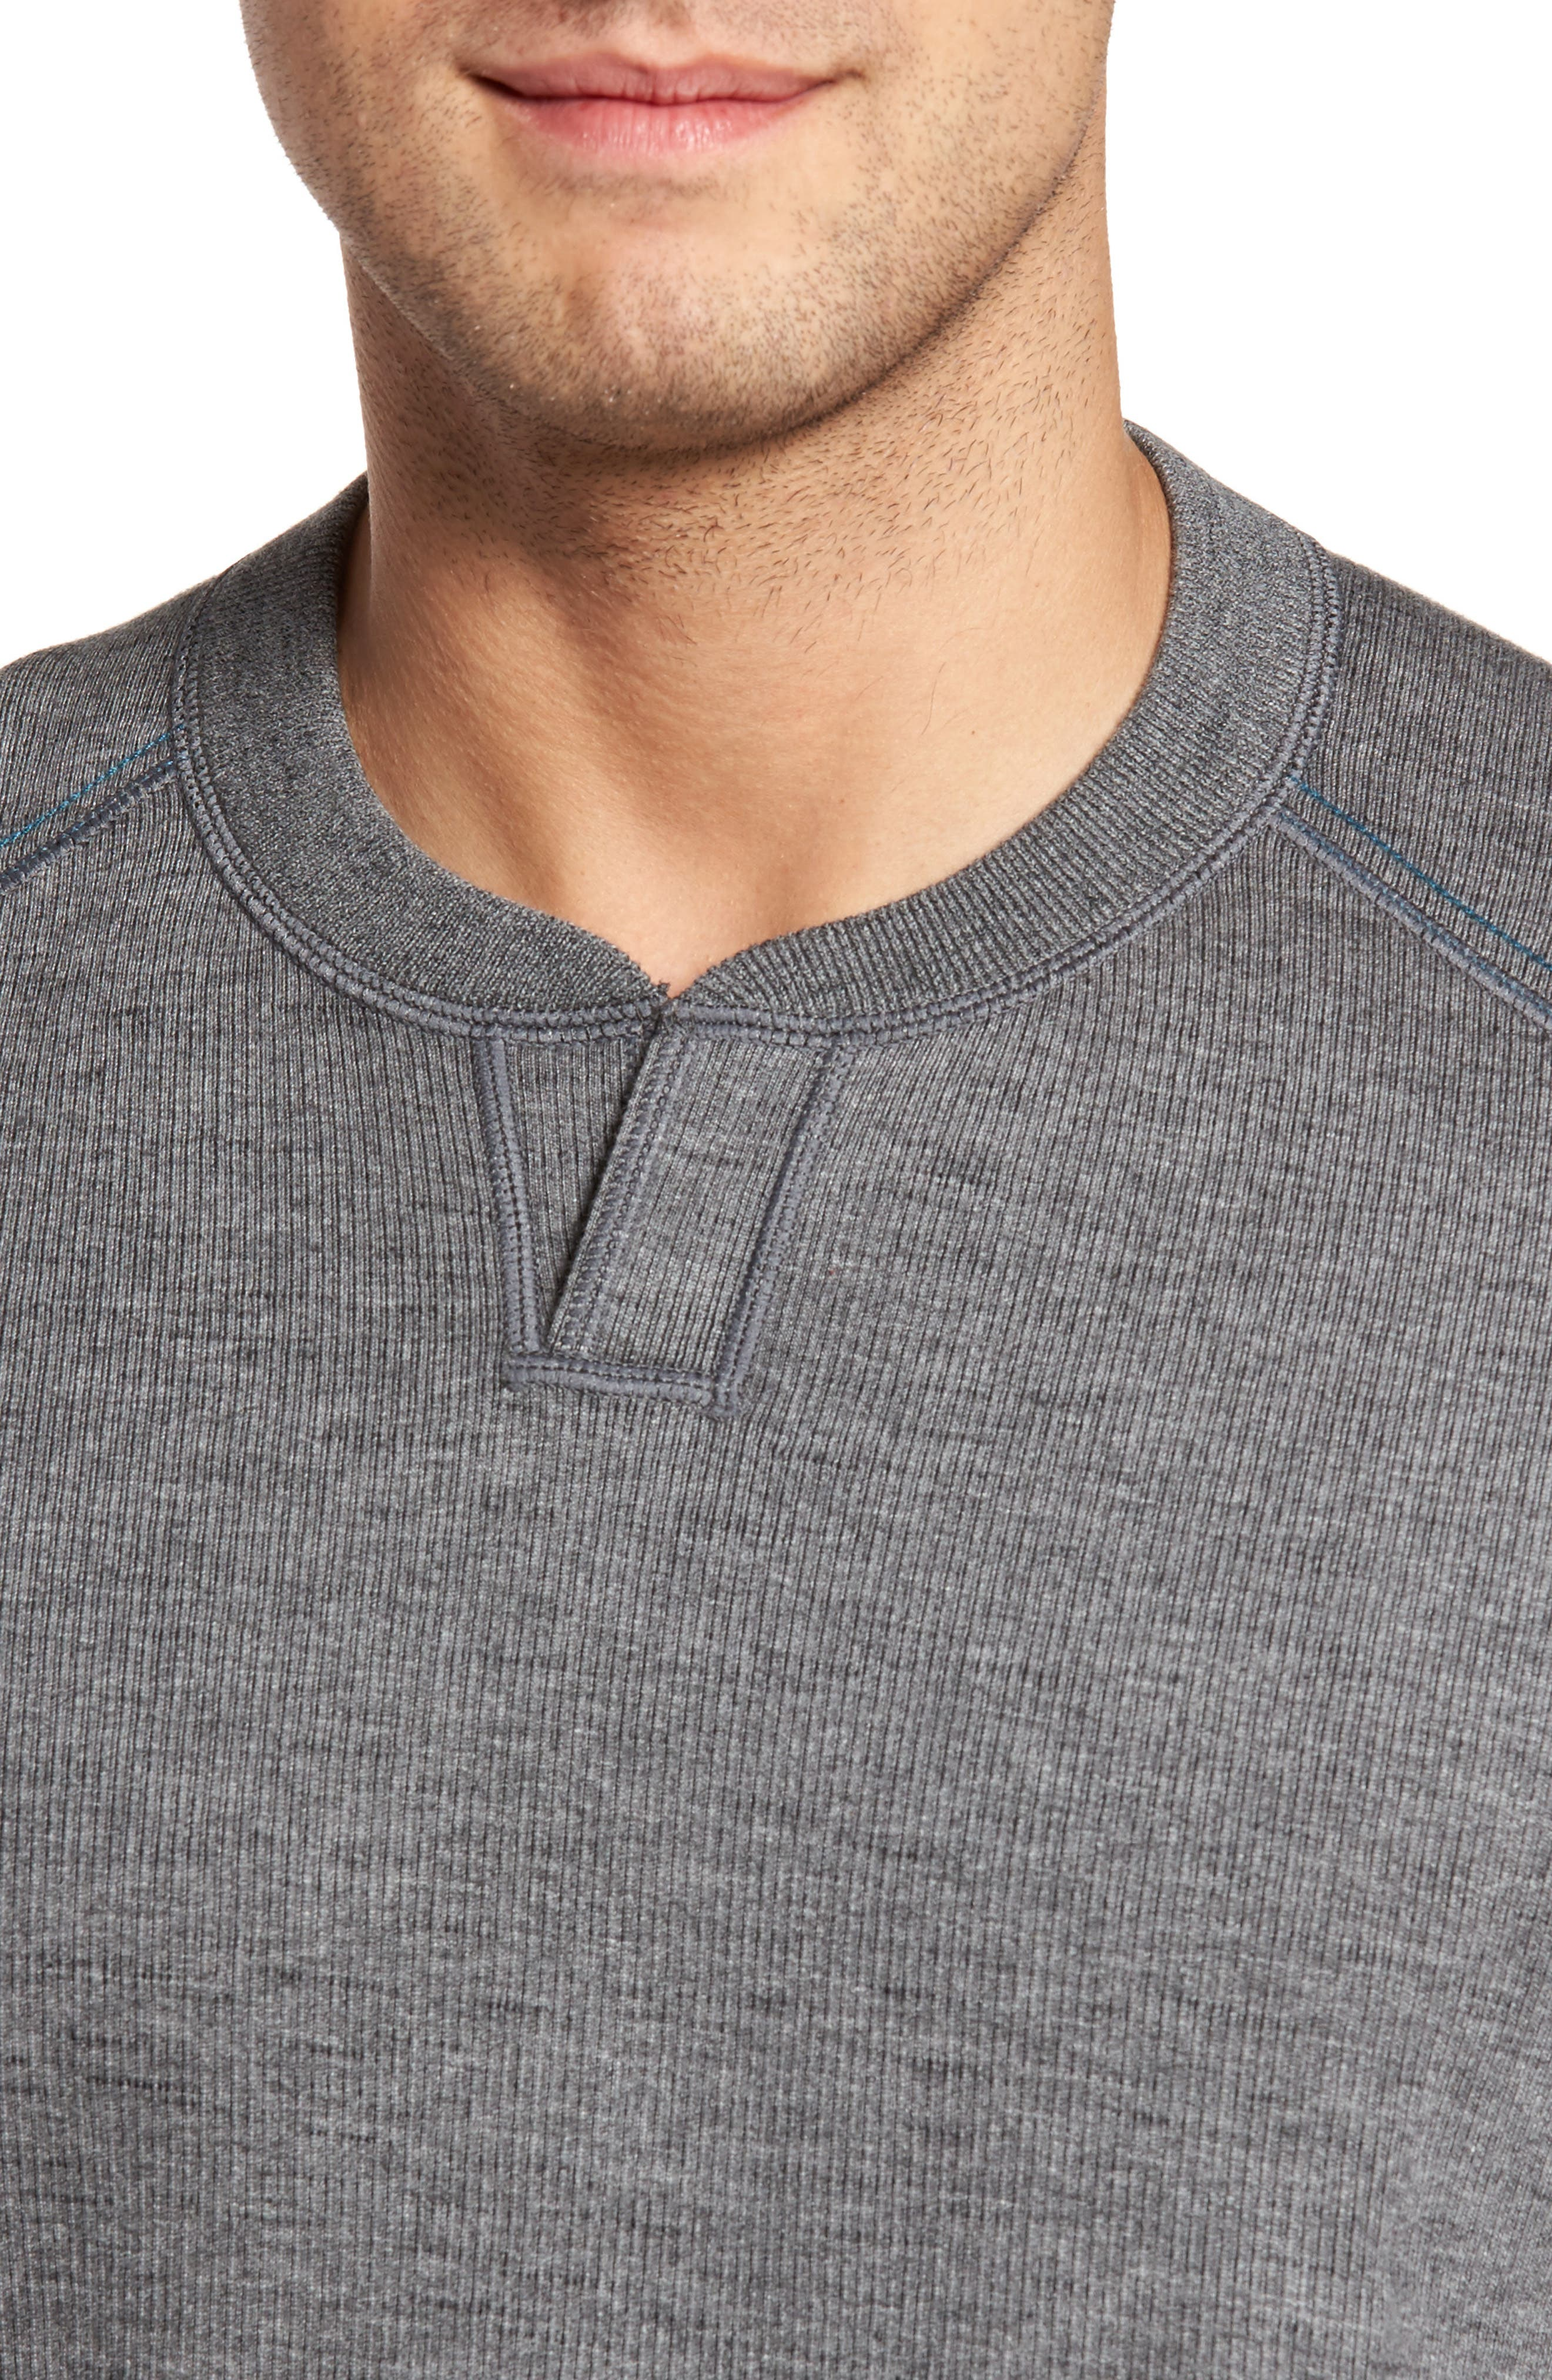 Flipsider Abaco Pullover,                             Alternate thumbnail 17, color,